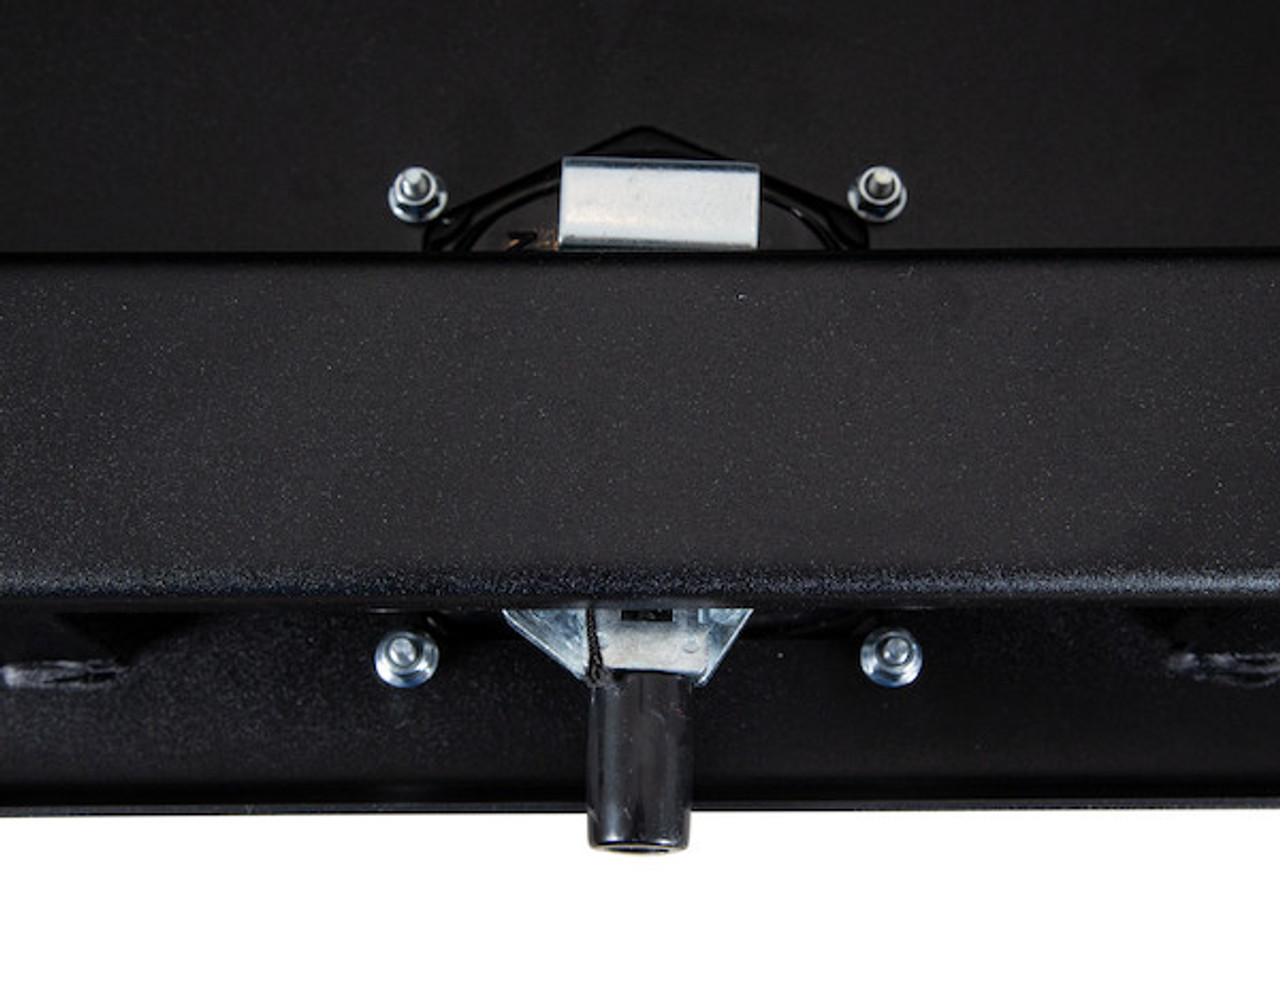 """1734503 BUYERS PRODUCTS TEXTURED MATTE BLACK STEEL UNDERBODY TRUCK TOOLBOX WITH 3-POINT LATCH 24""""Hx24""""Dx30""""W  Picture # 7"""